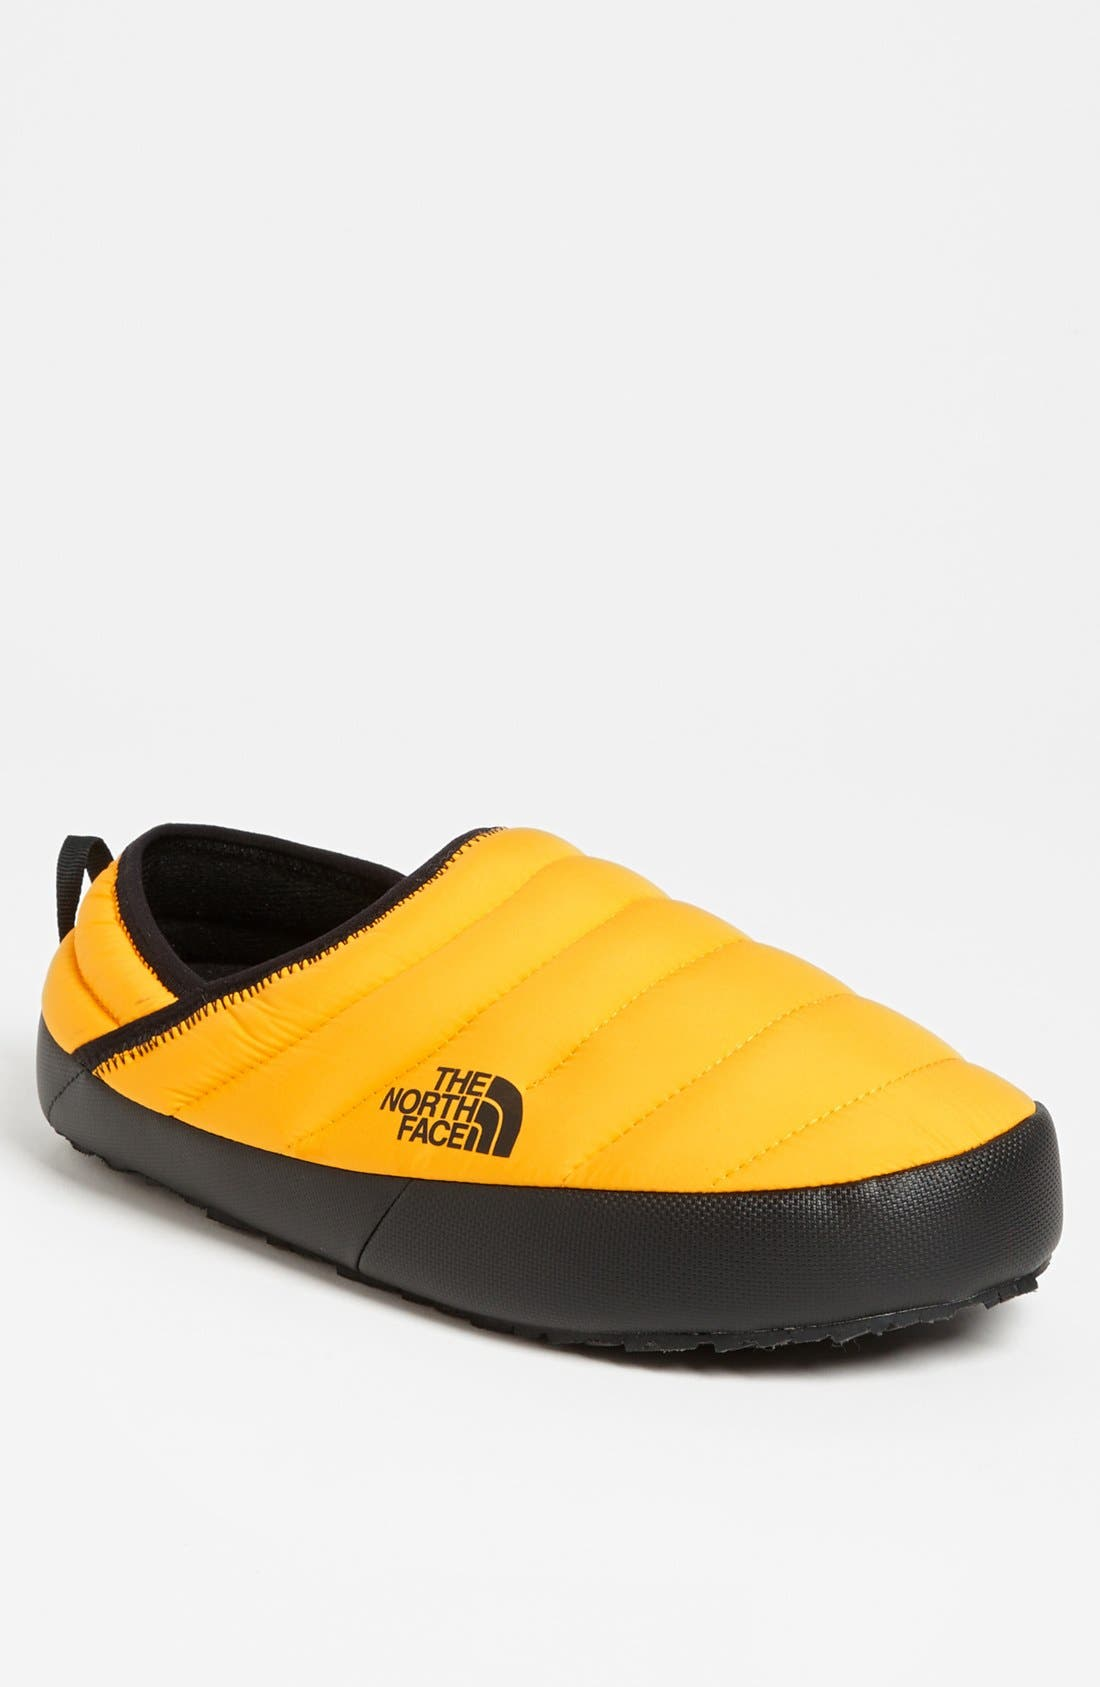 Main Image - The North Face Traction Mule Slipper